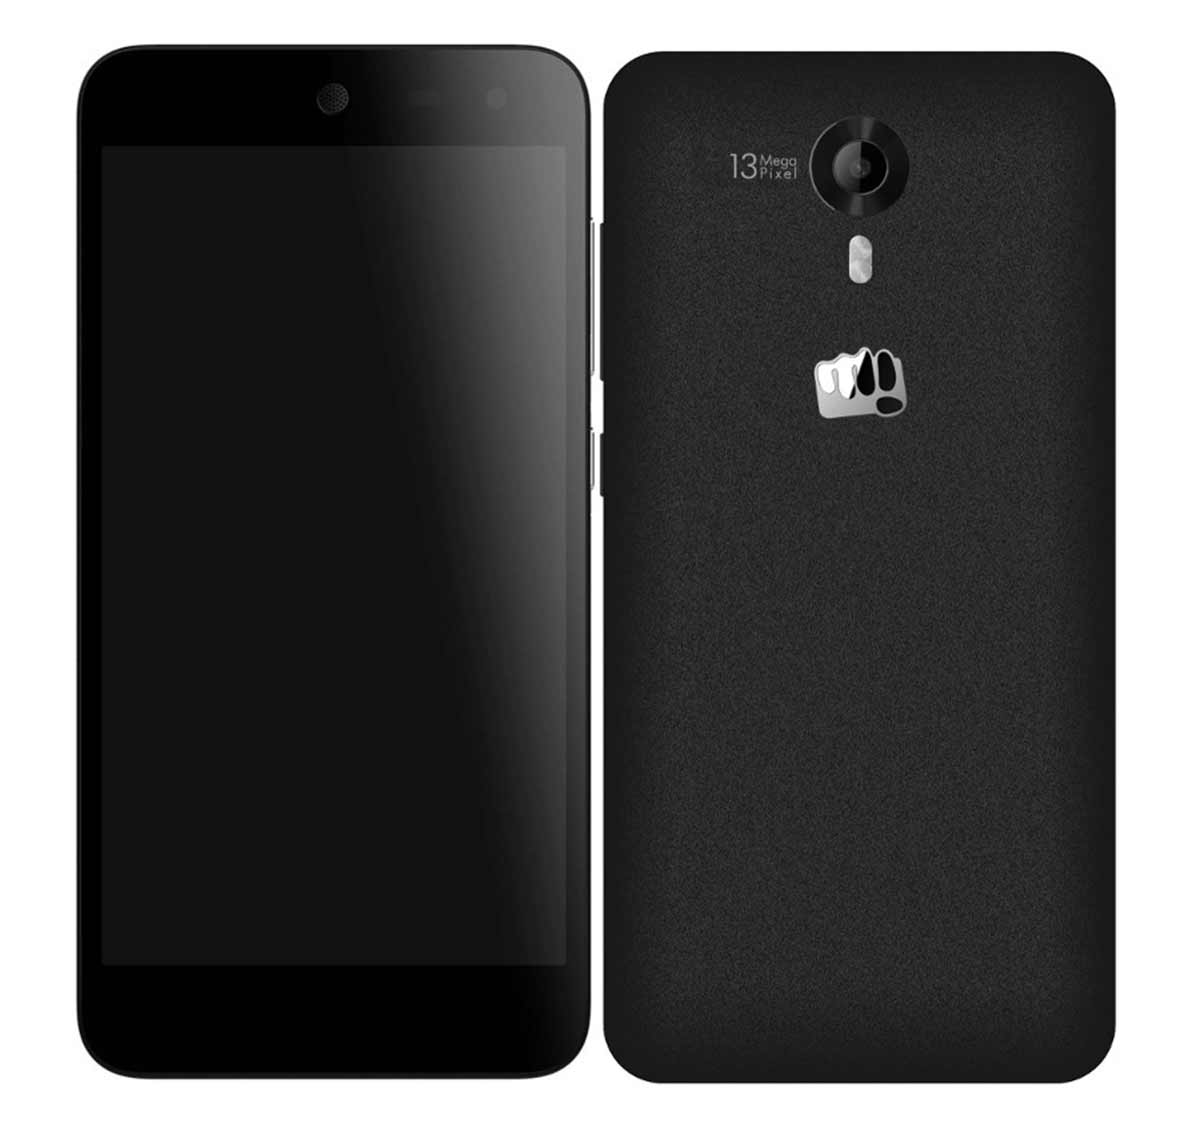 micromax canvas nitro 4g e455 launched